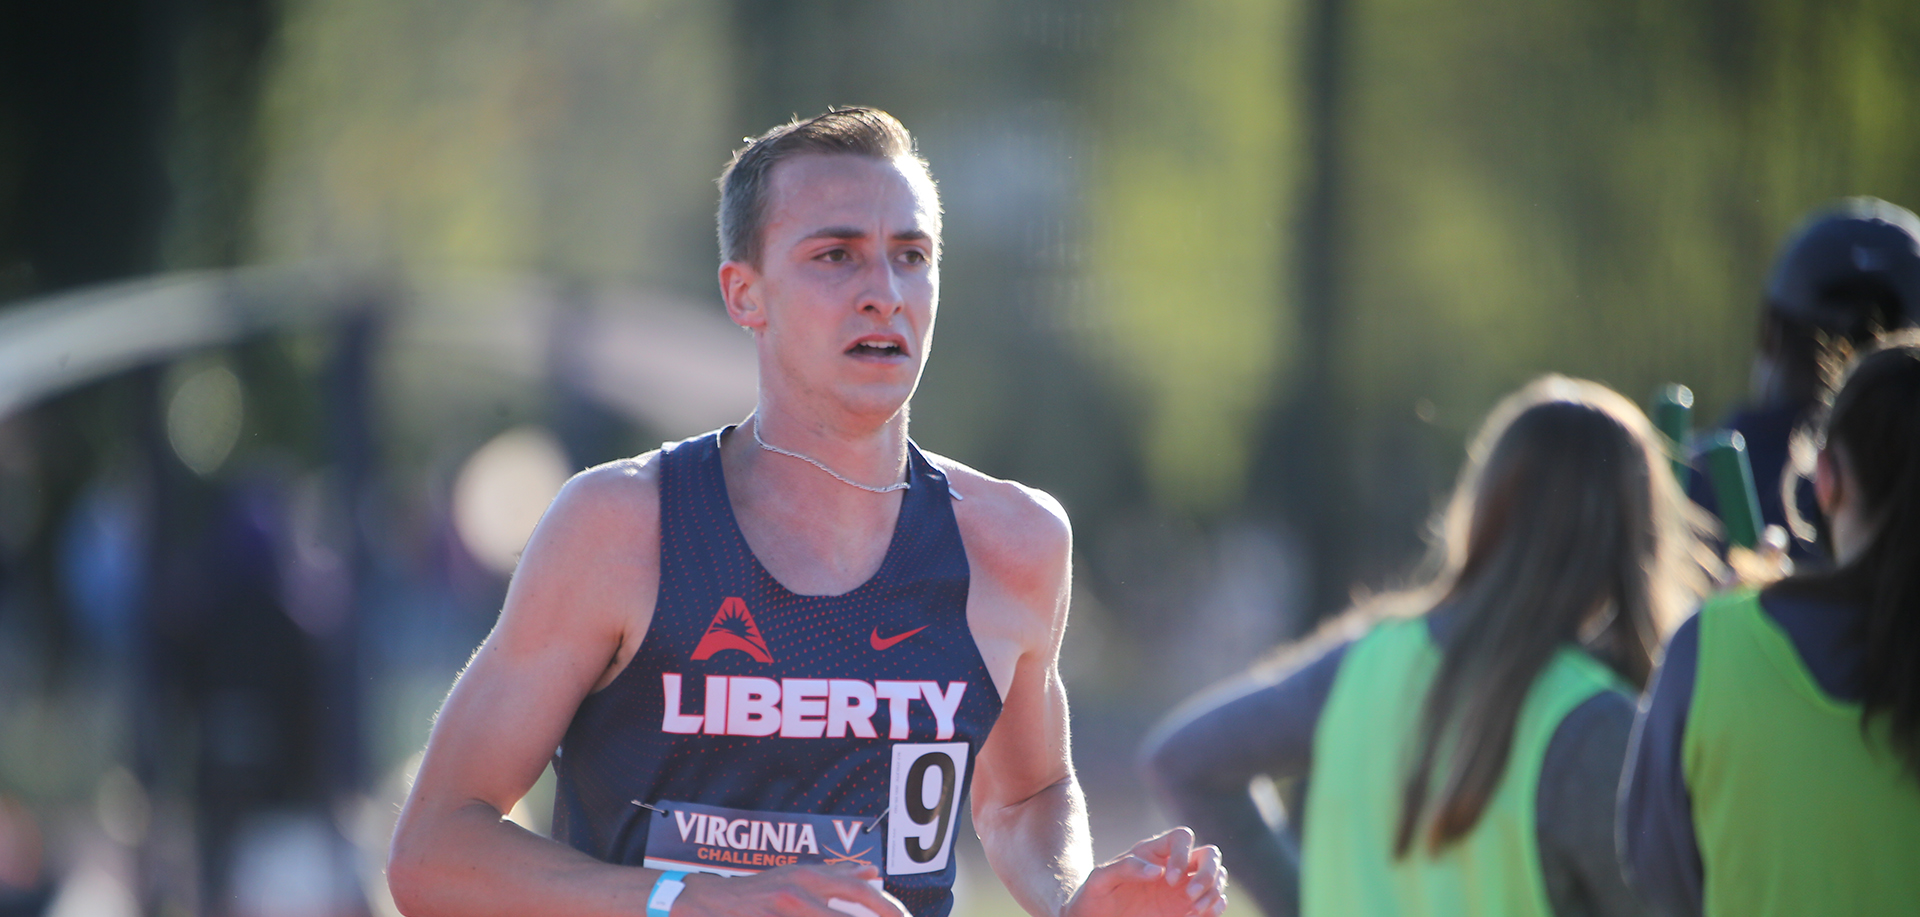 Ryan Drew's 5K time of 13:53.30 on Saturday set an ASUN Conference all-time record. (Photo provided by Jim Daves)